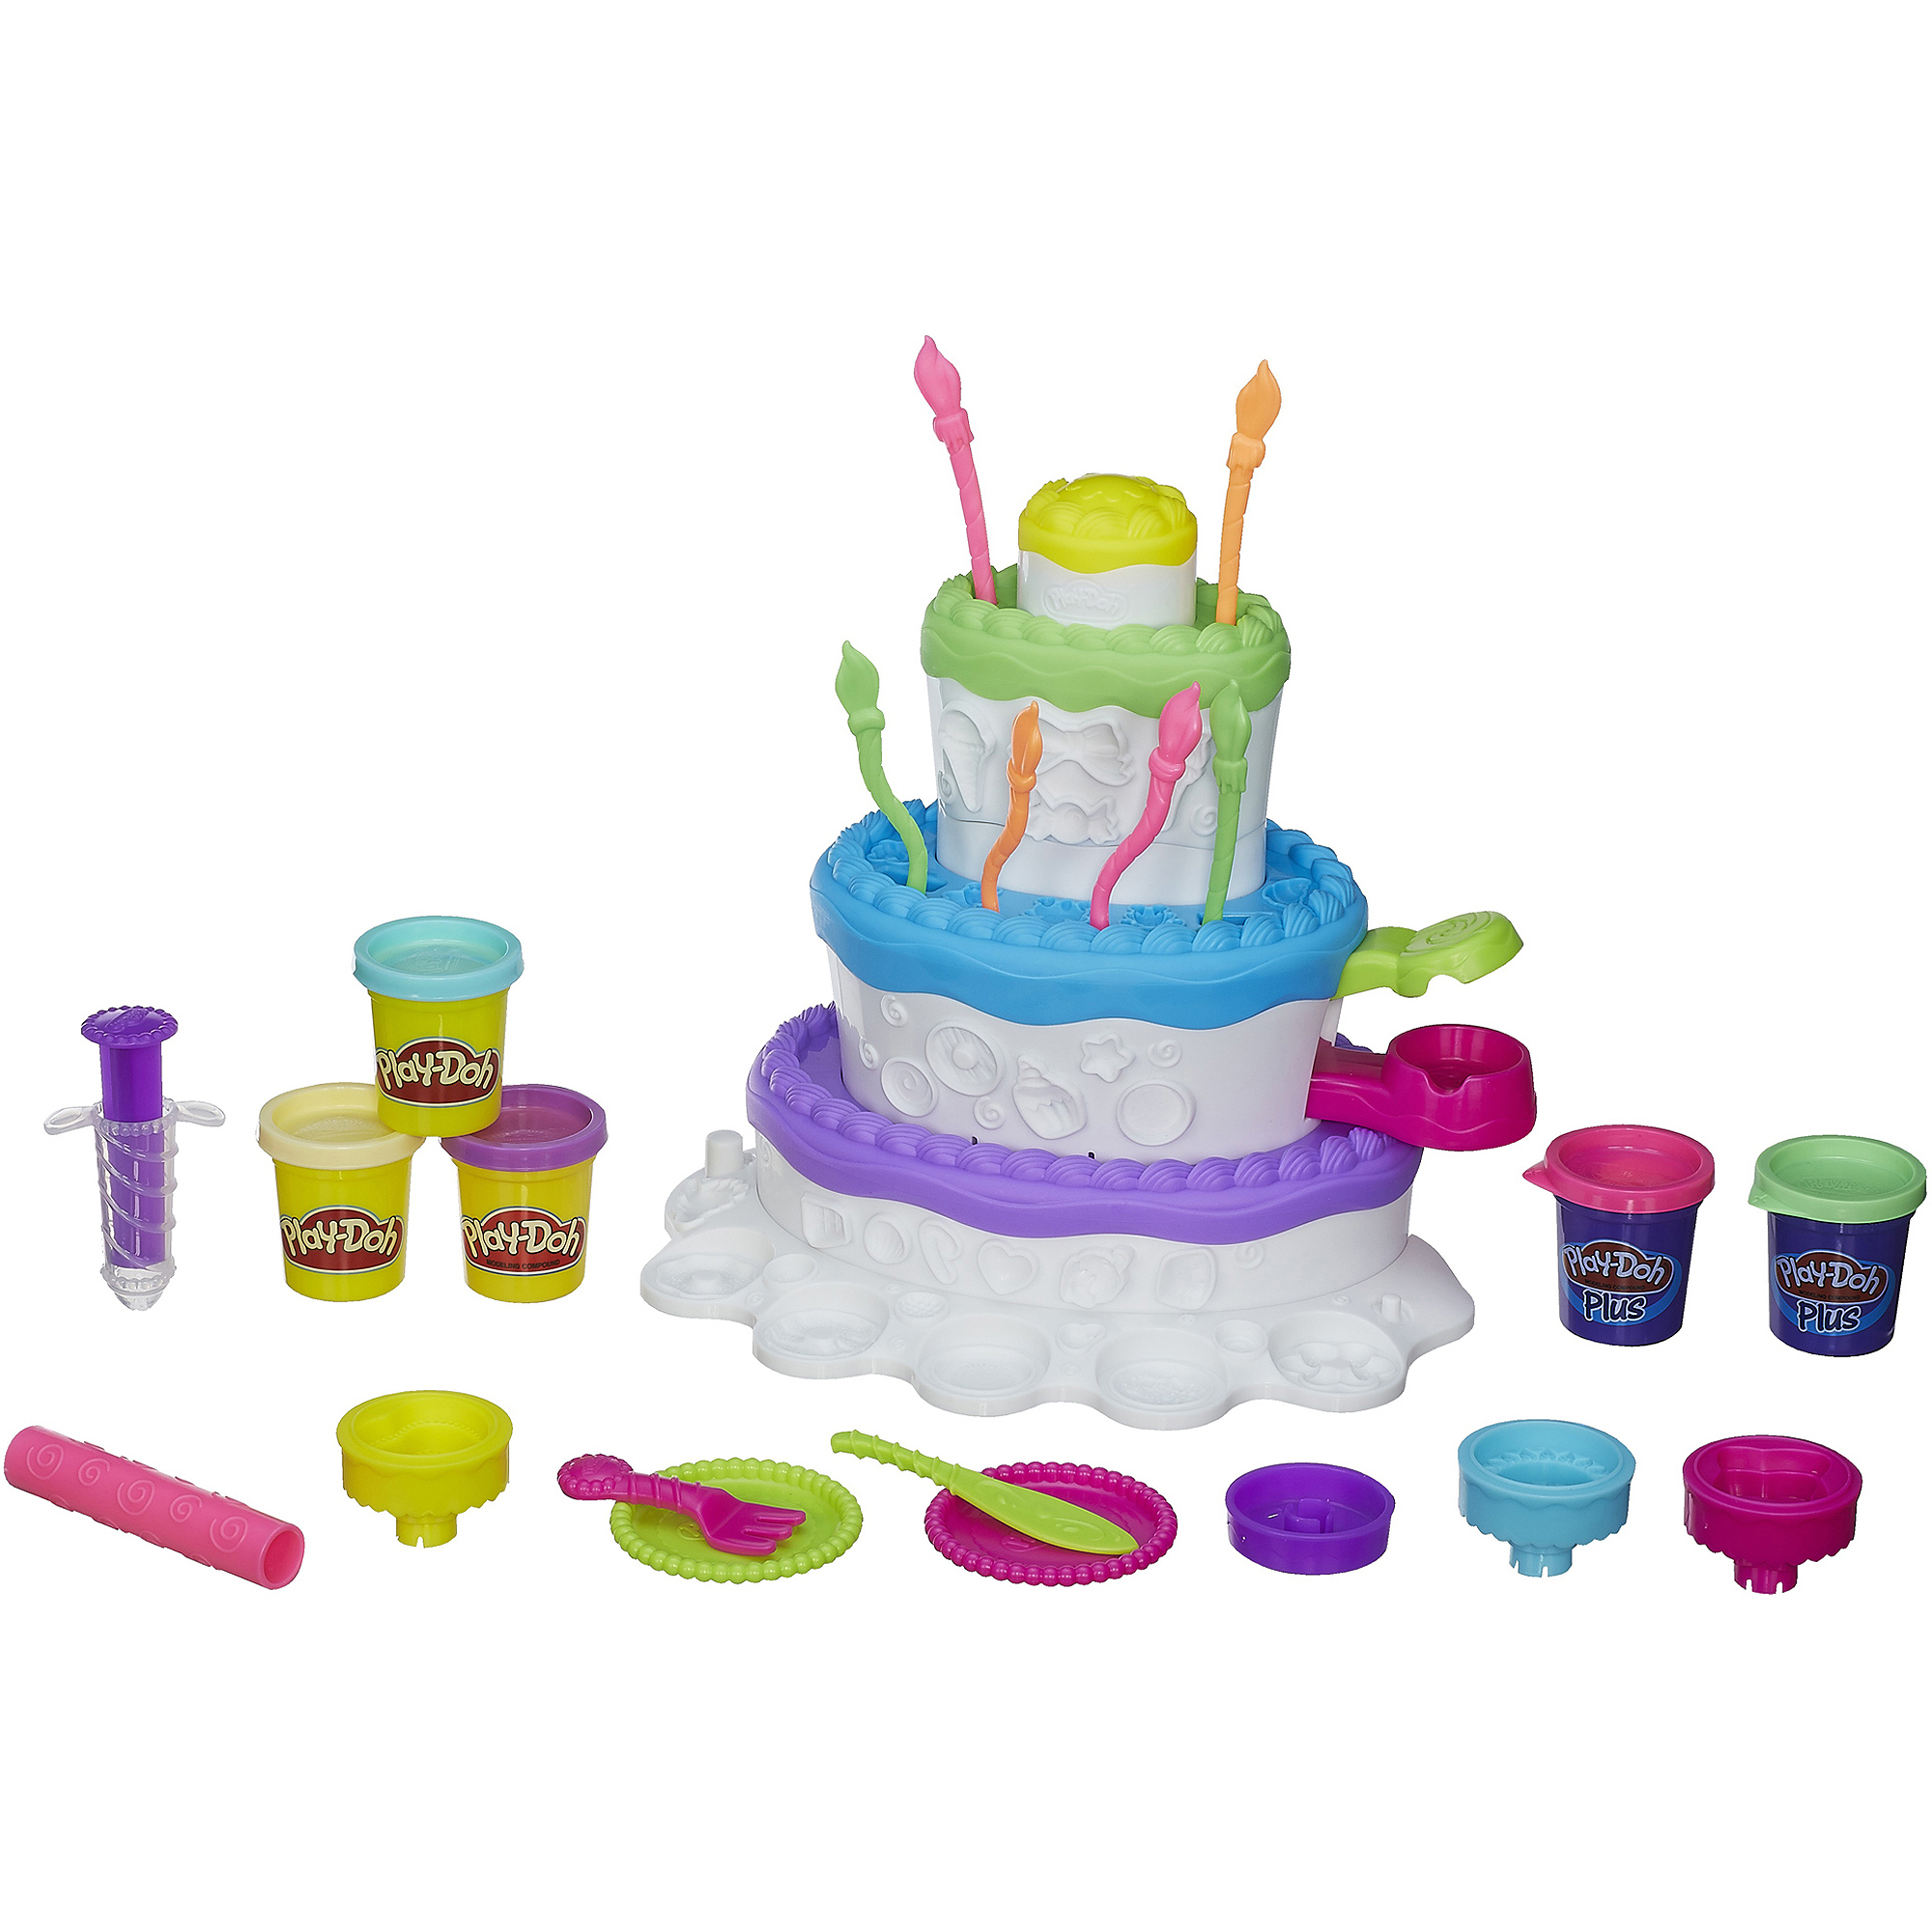 Play-Doh Sweet Shoppe Cake Mountain Play Set